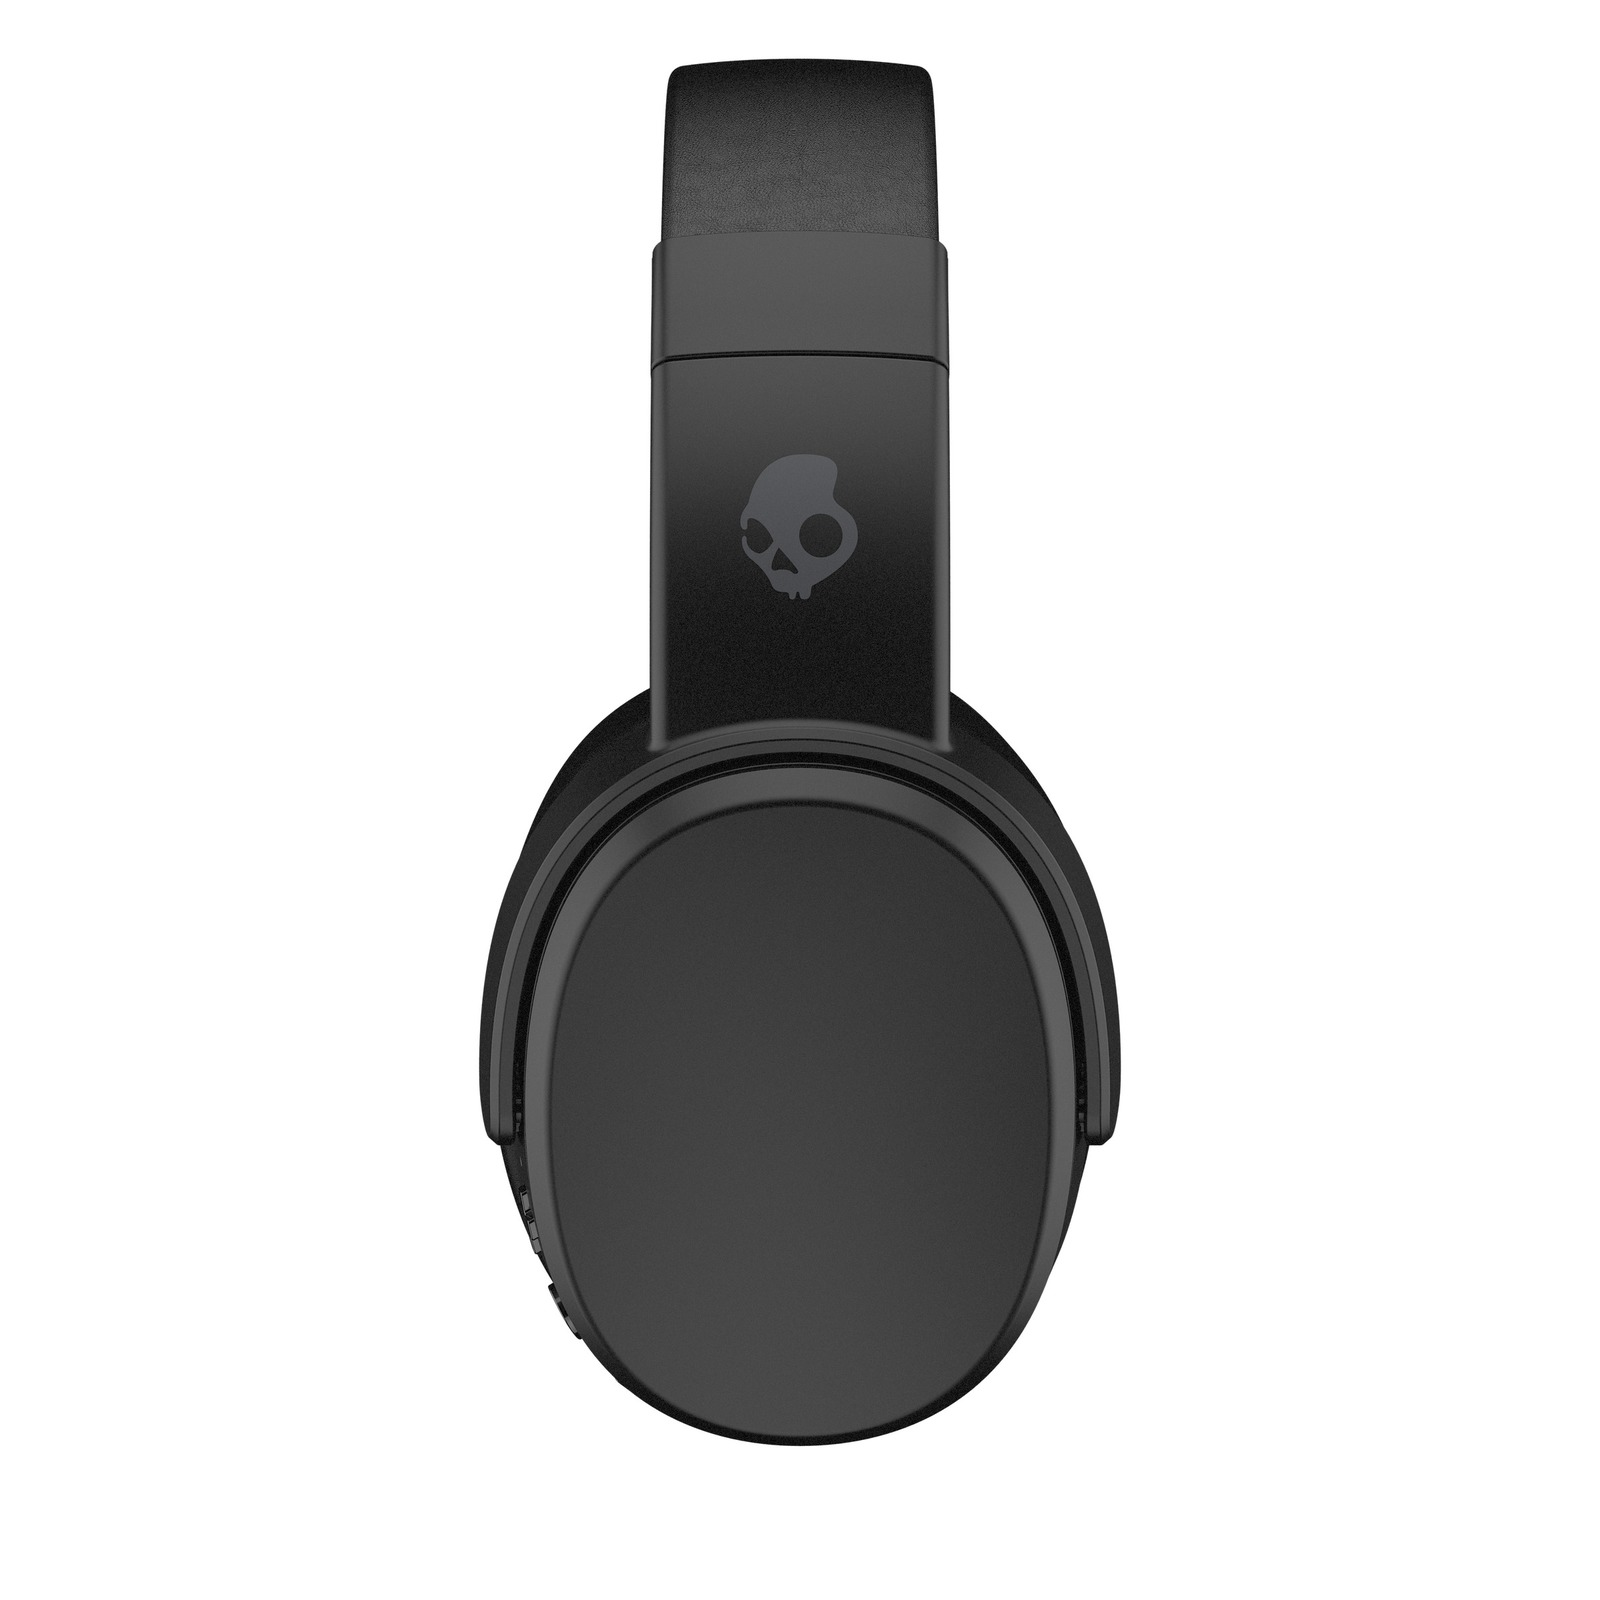 Skullcandy Crusher Wireless Headphones - Black image